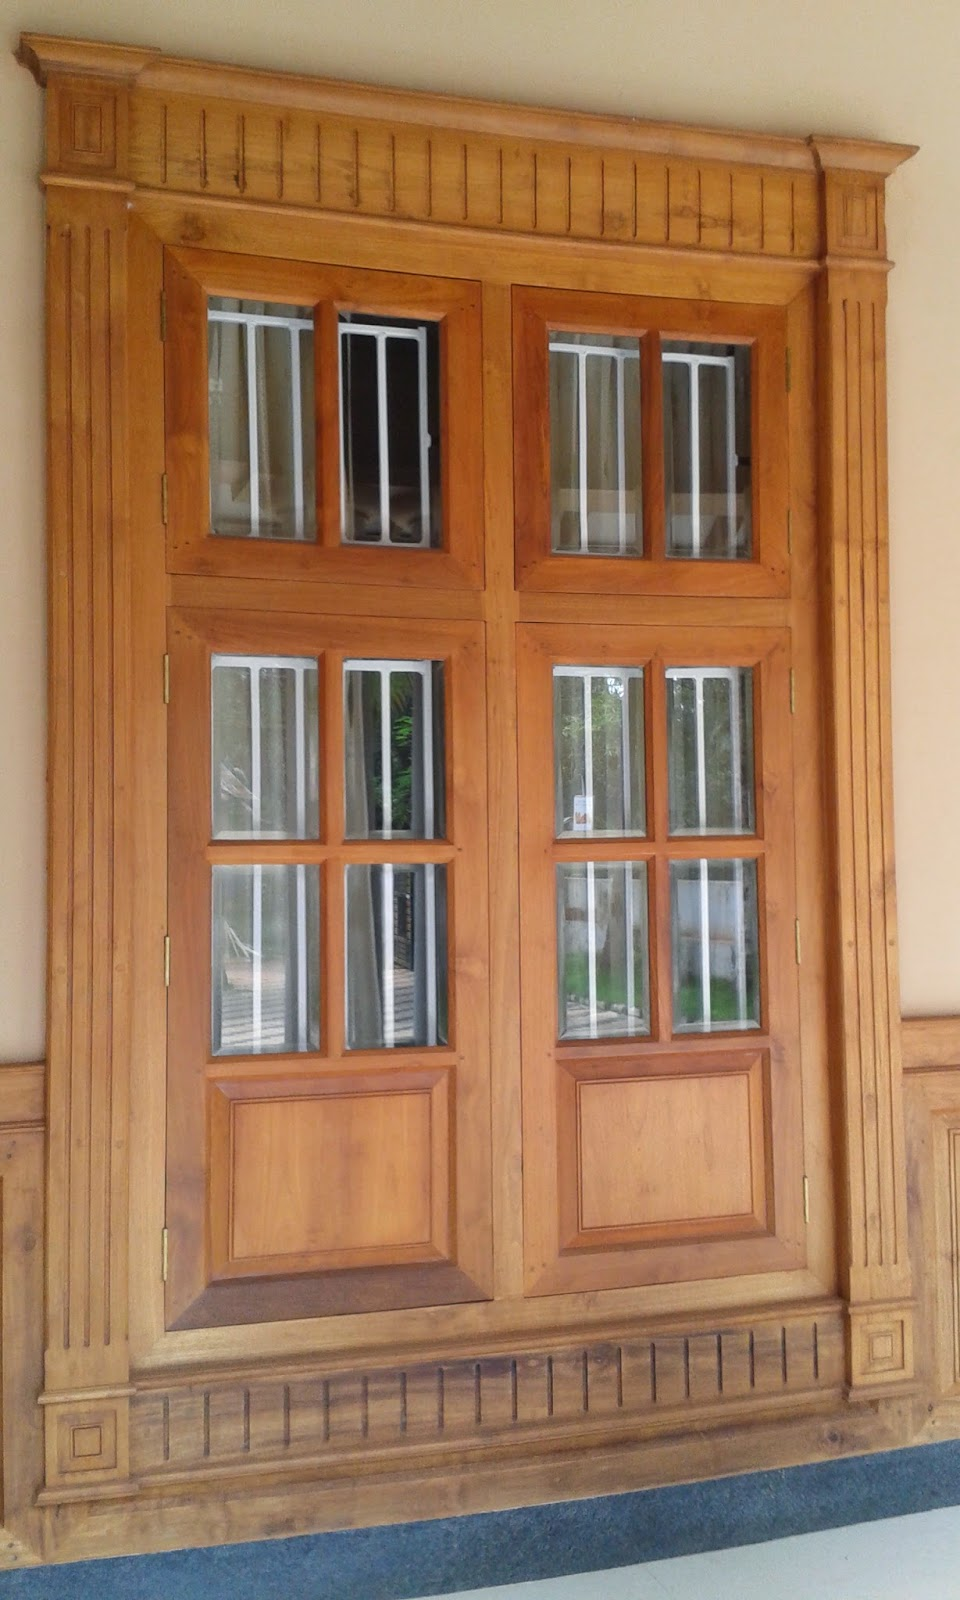 Kerala wooden window frames the image for Window design wooden